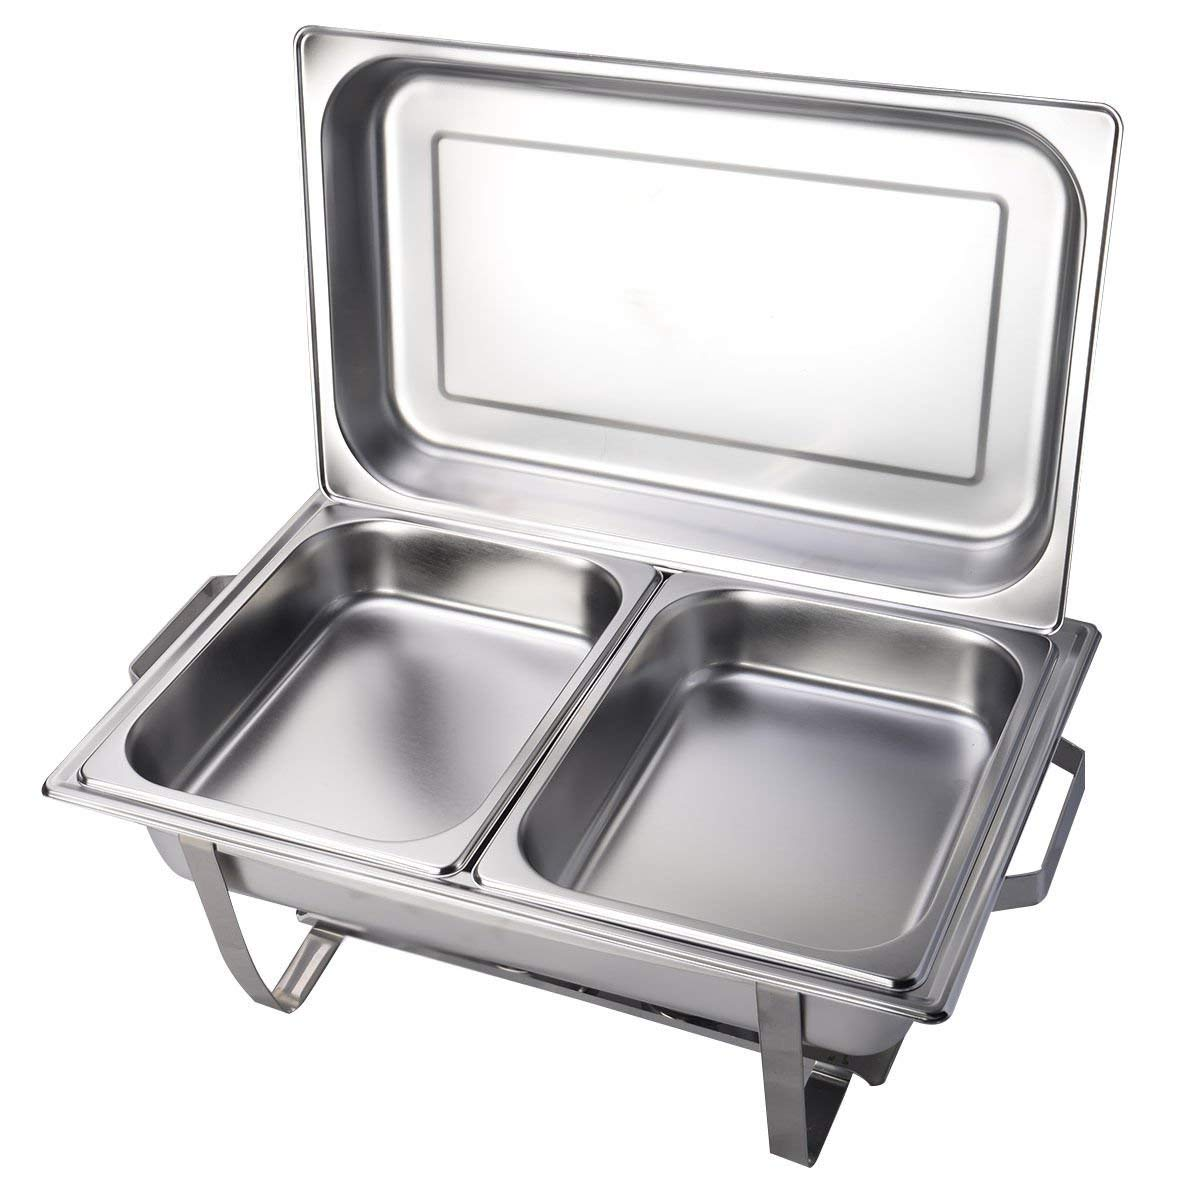 """Rectangular Chafing Dish Steel Stainless 2 Packs of 9 Quart Full Size 24"""" x 14"""" x 11.4"""" (L x W x H)"""